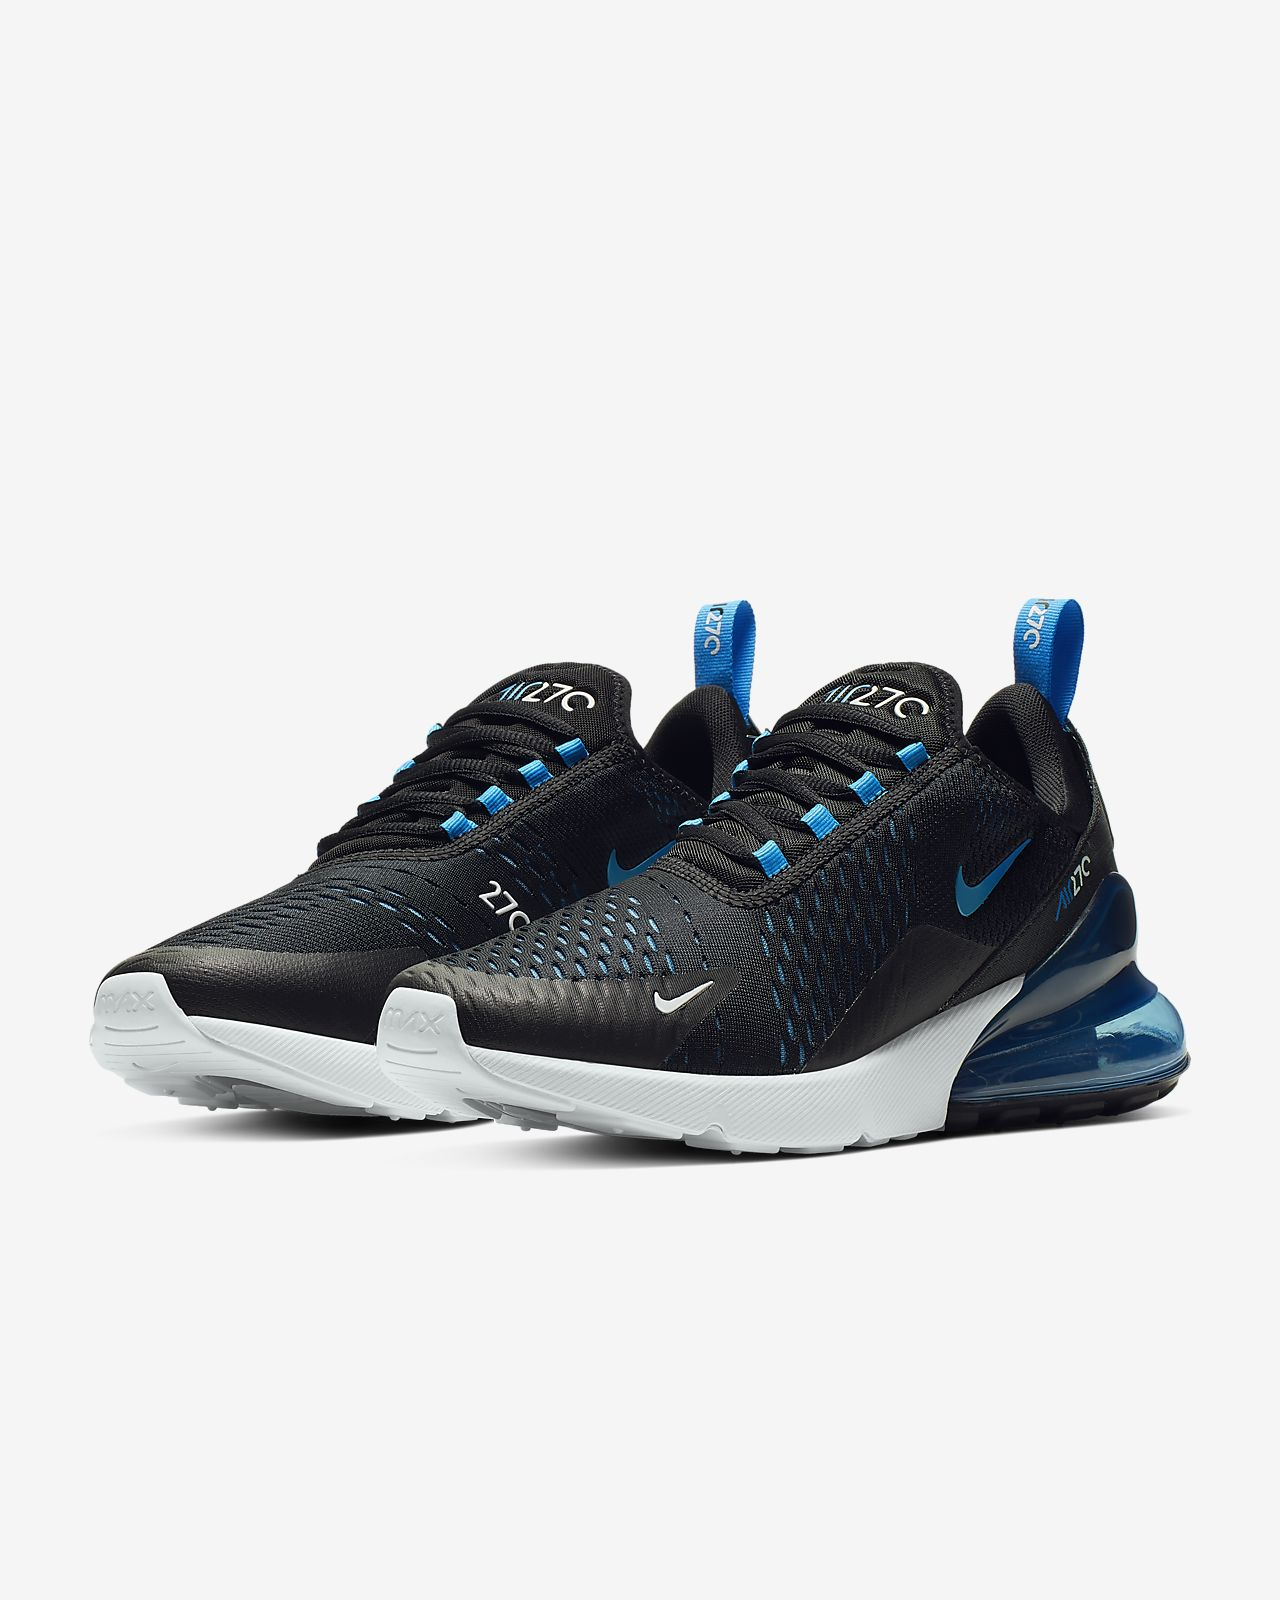 lowest price 9b525 2de58 ... Nike Air Max 270 Men s Shoe